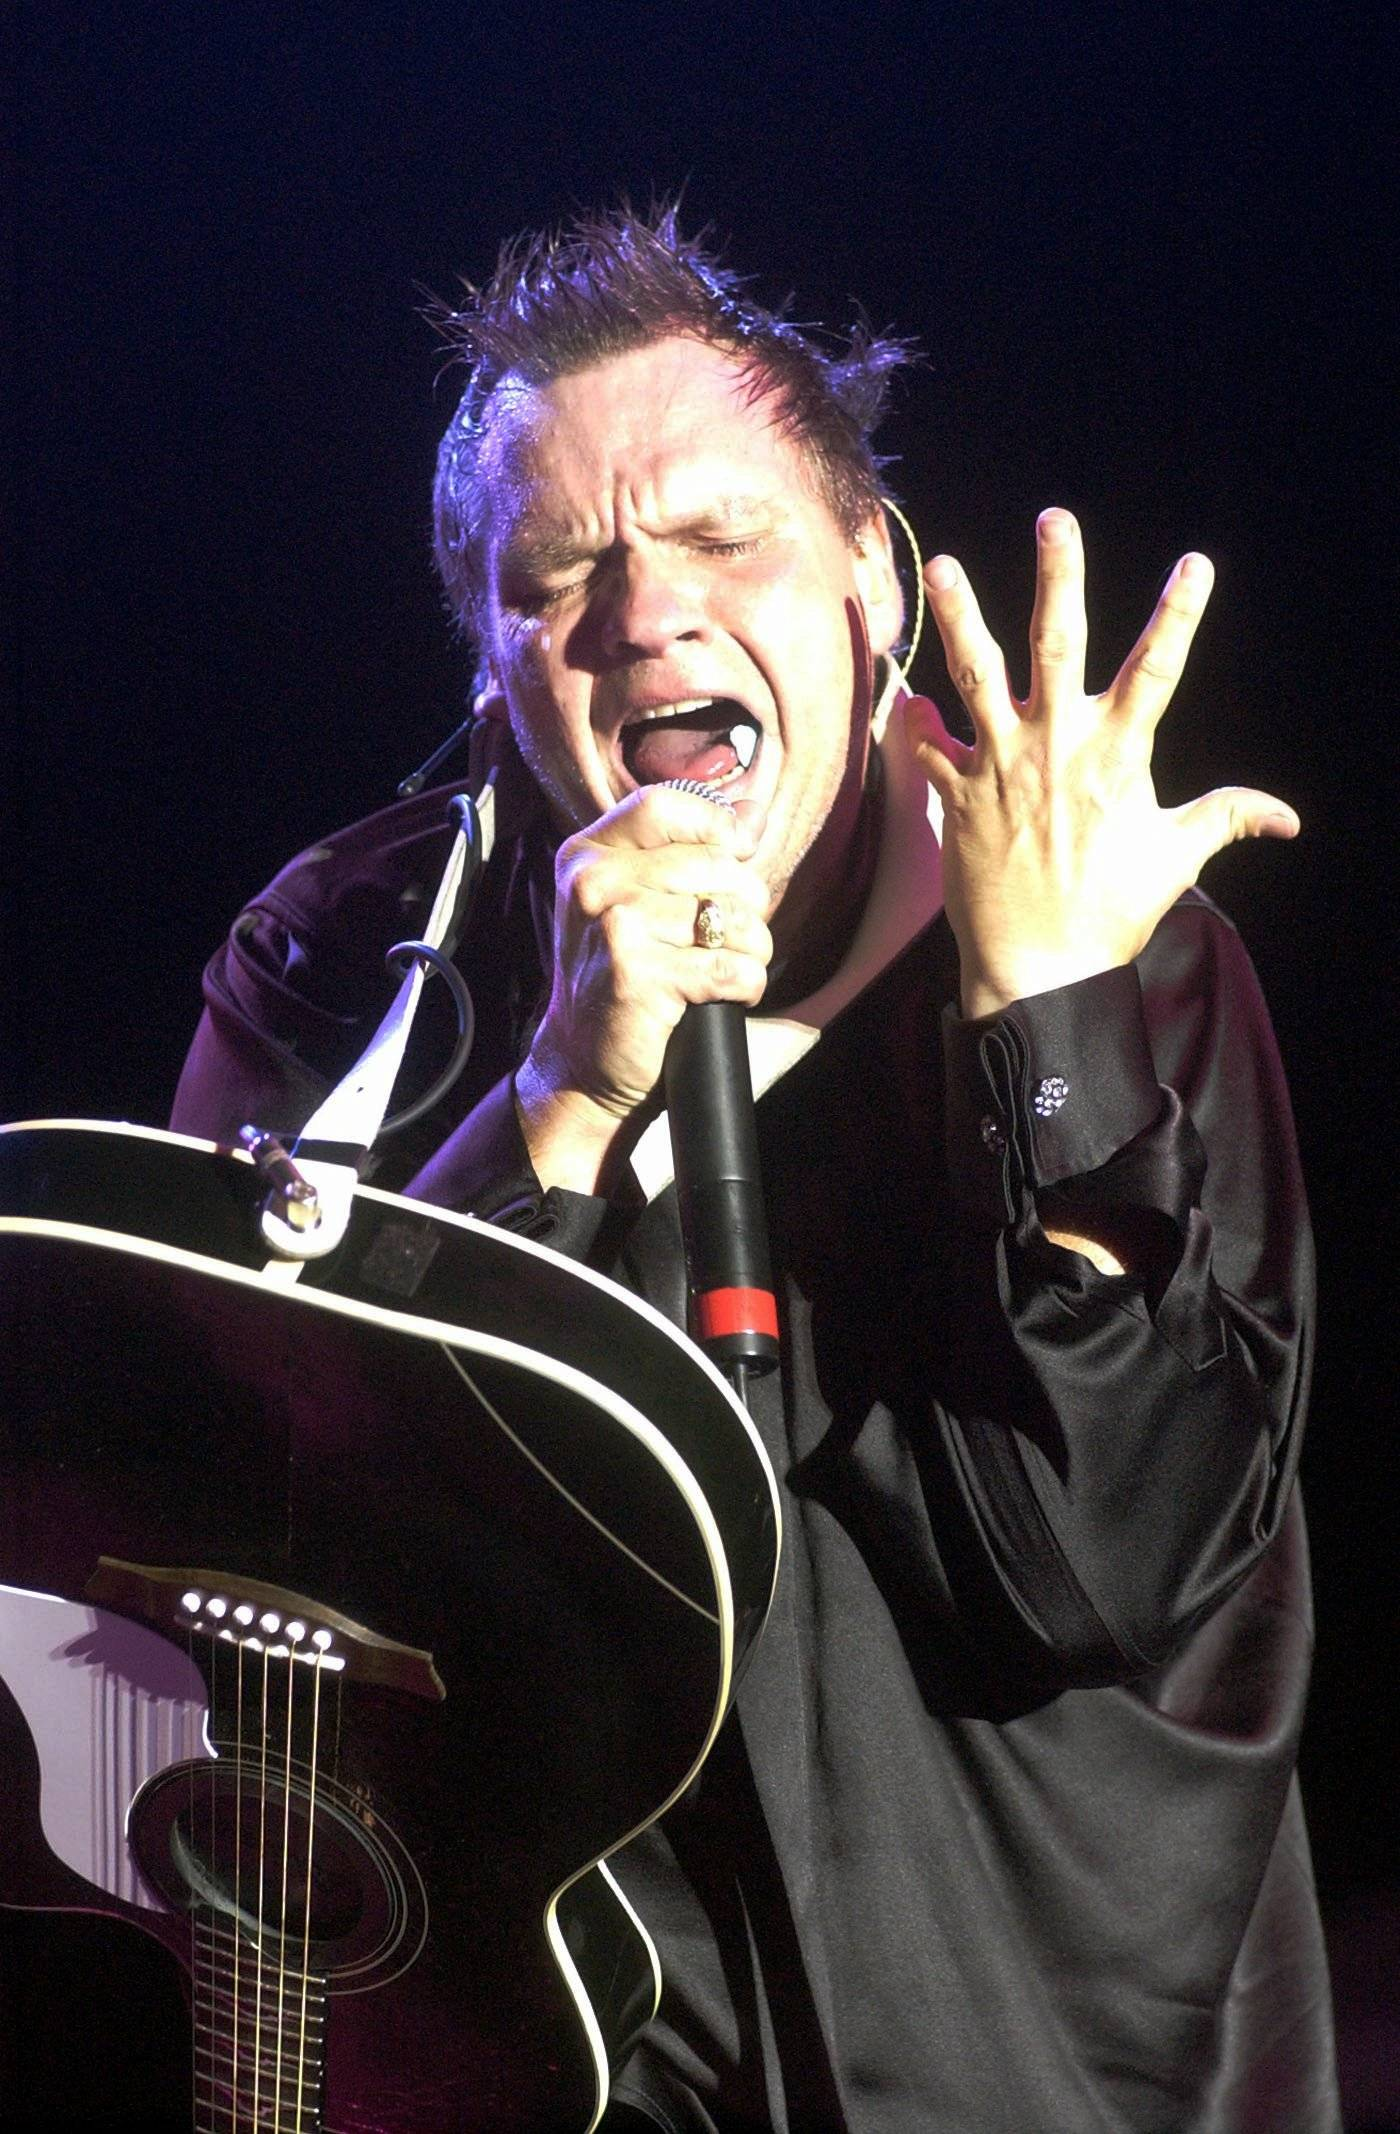 Meat Loaf performs at the Genesee Theatre in Waukegan on Wednesday, April 6.